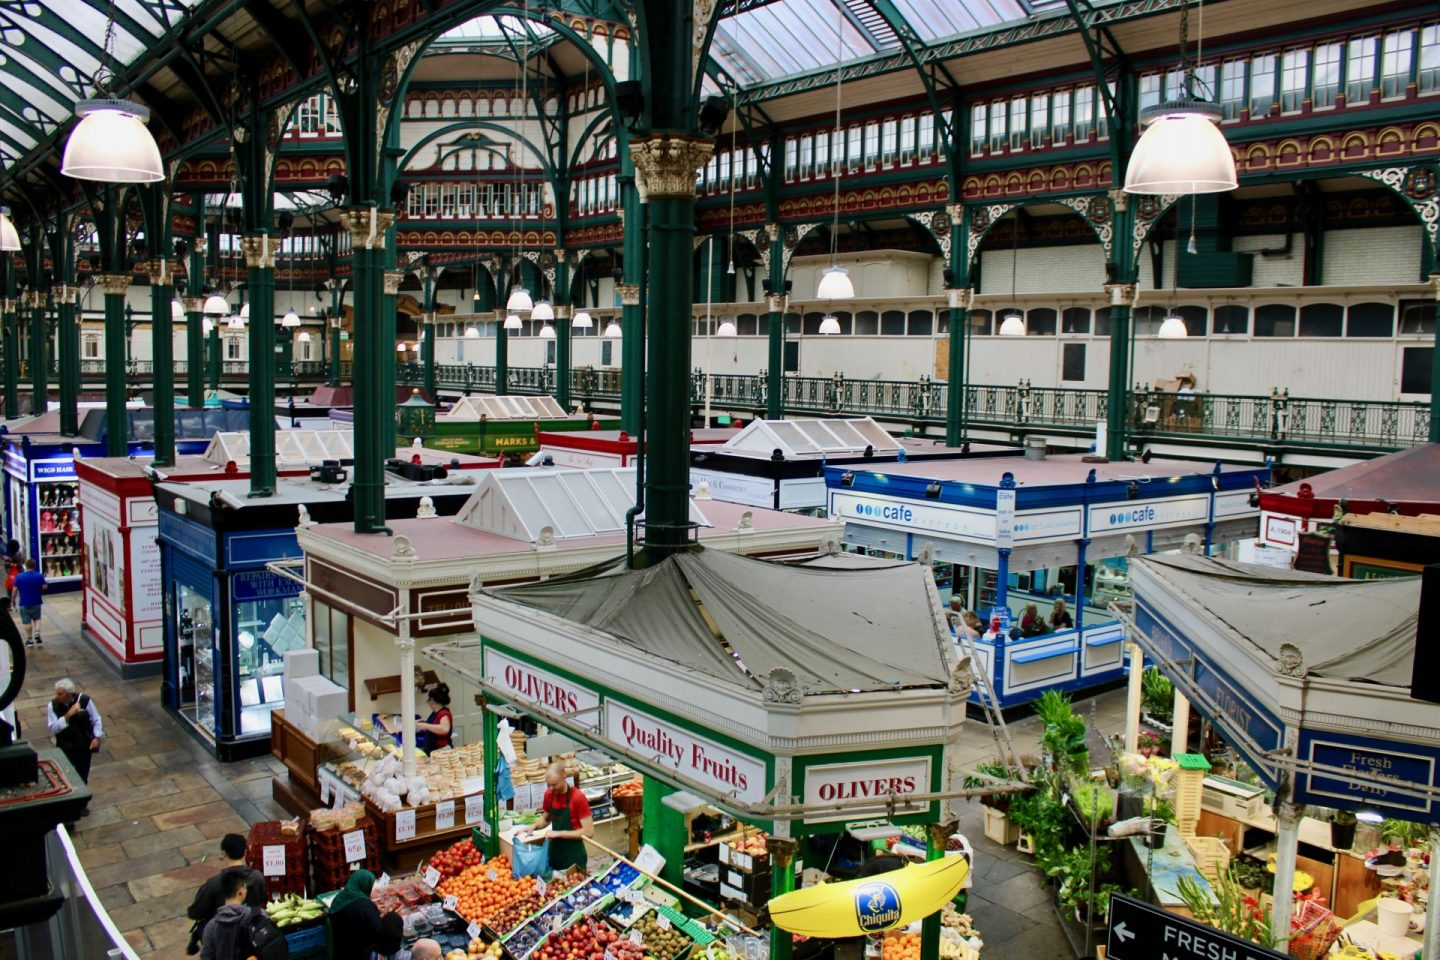 things to do in Leeds city centre - a shot of Kirkgate market taken from the balcony of the 1904 hall